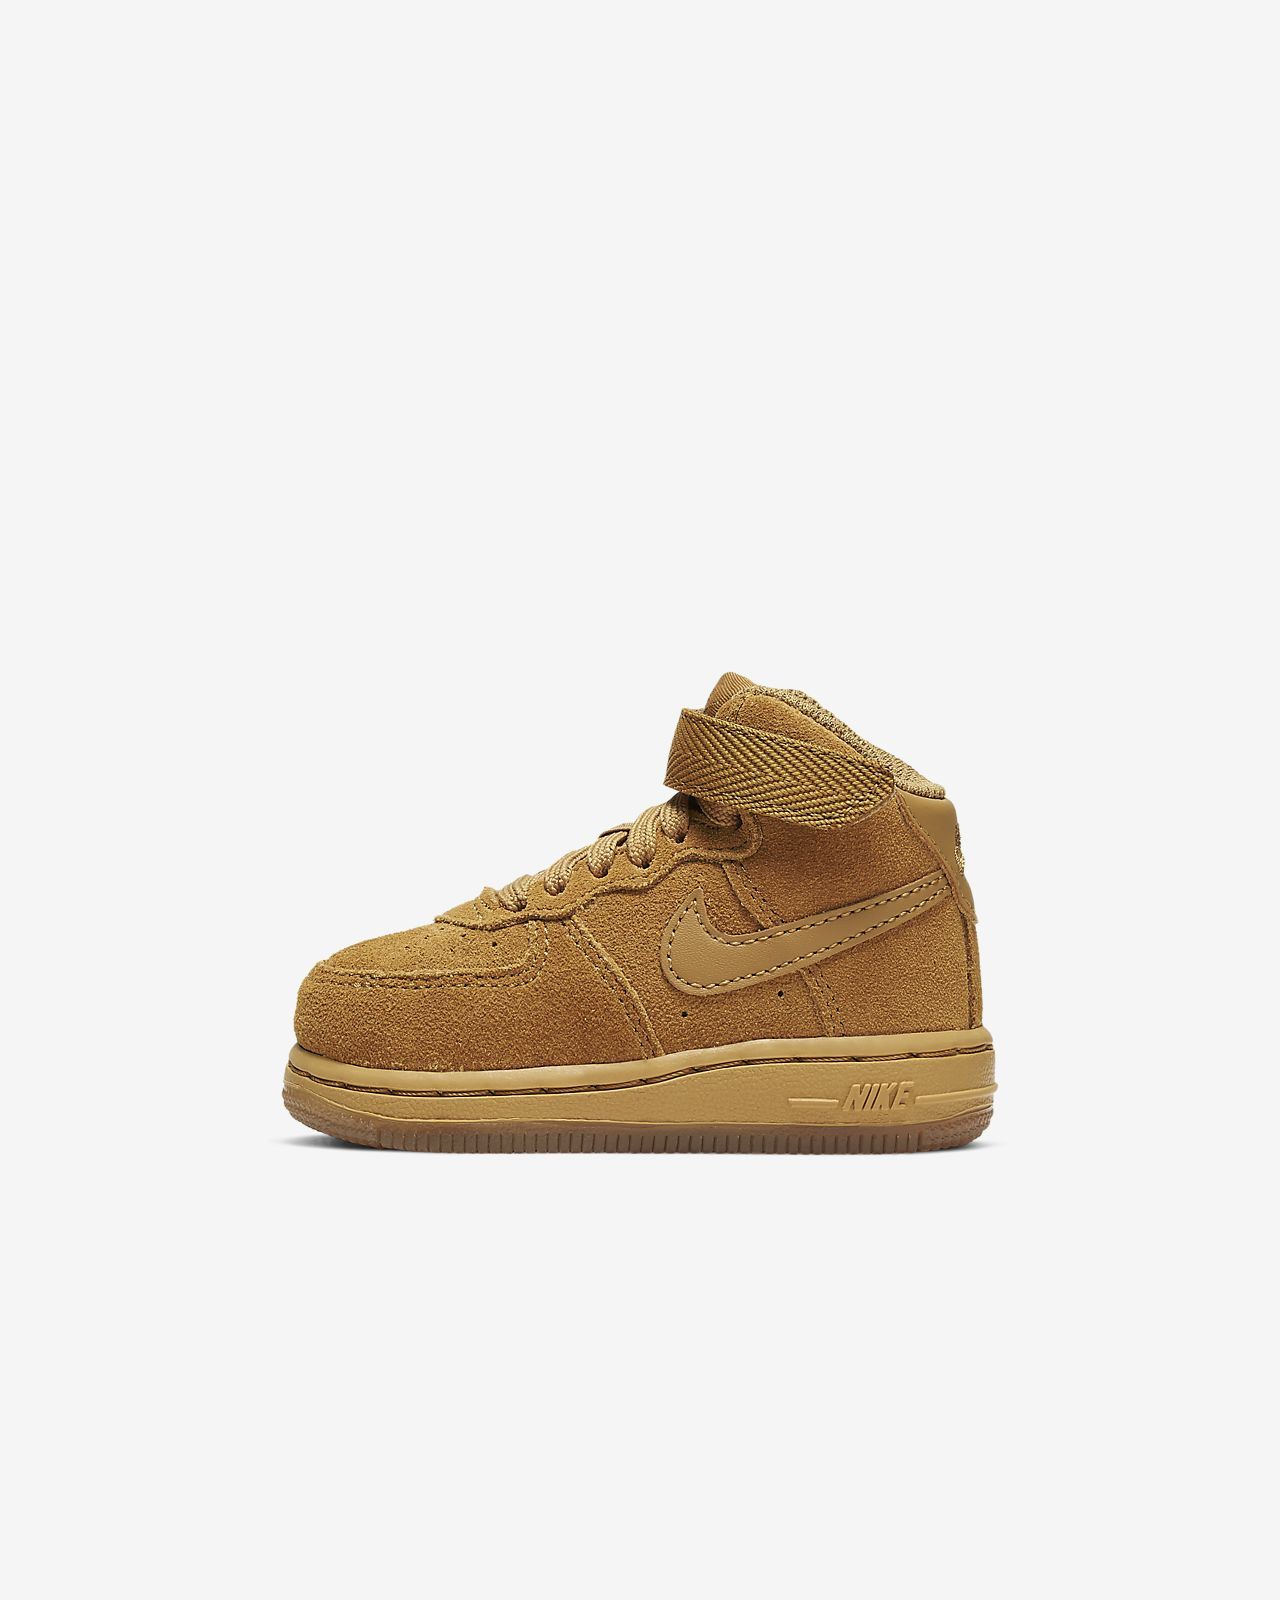 Nike Force 1 Mid LV8 3 Baby and Toddler Shoe